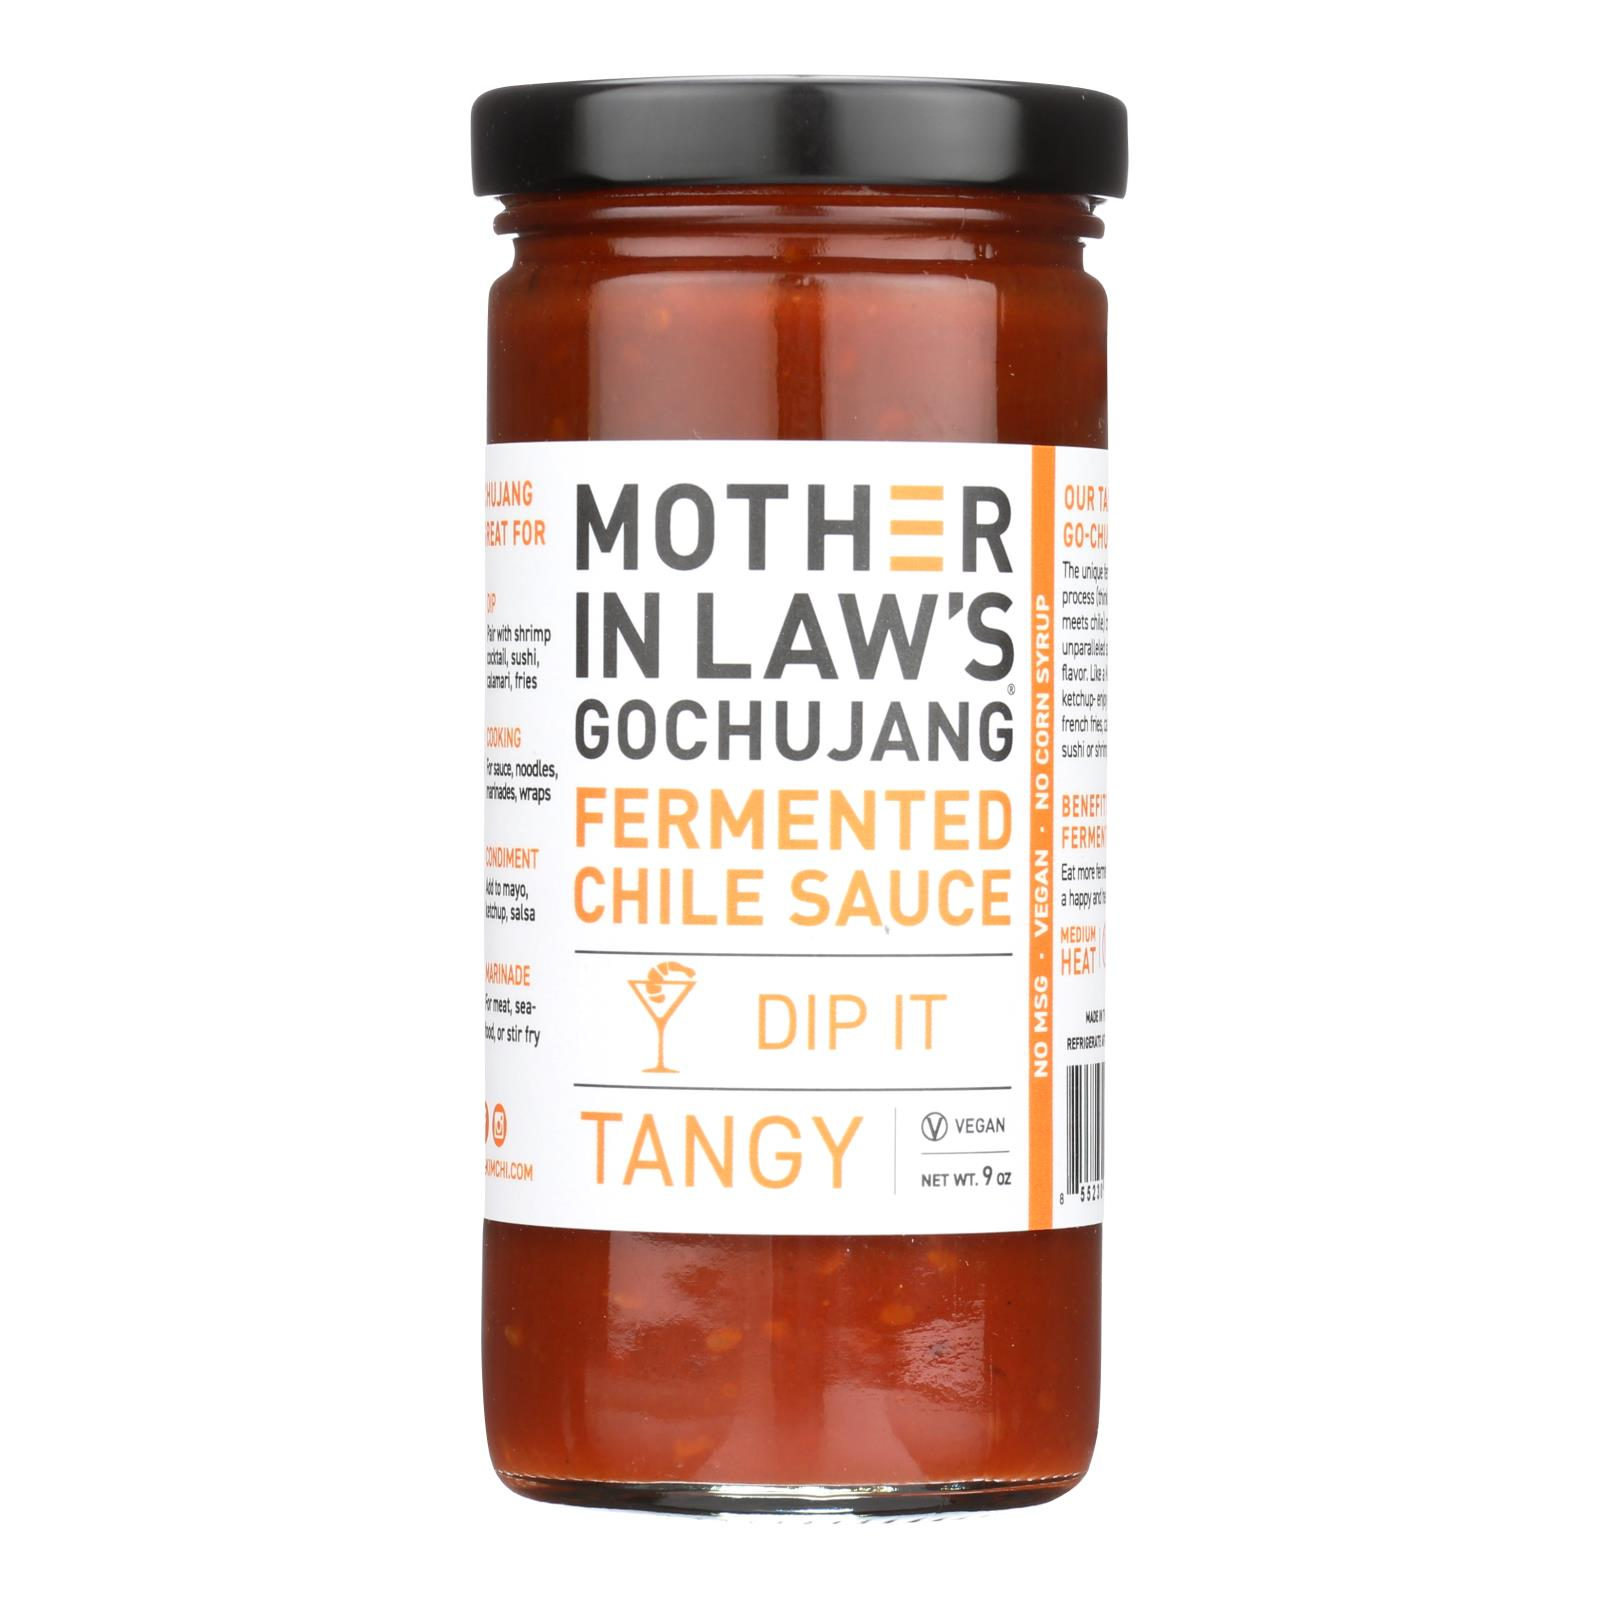 Mother-In-Law's Kimchi Gochujang Fermented Chile Paste - Case of 6 - 9 OZ